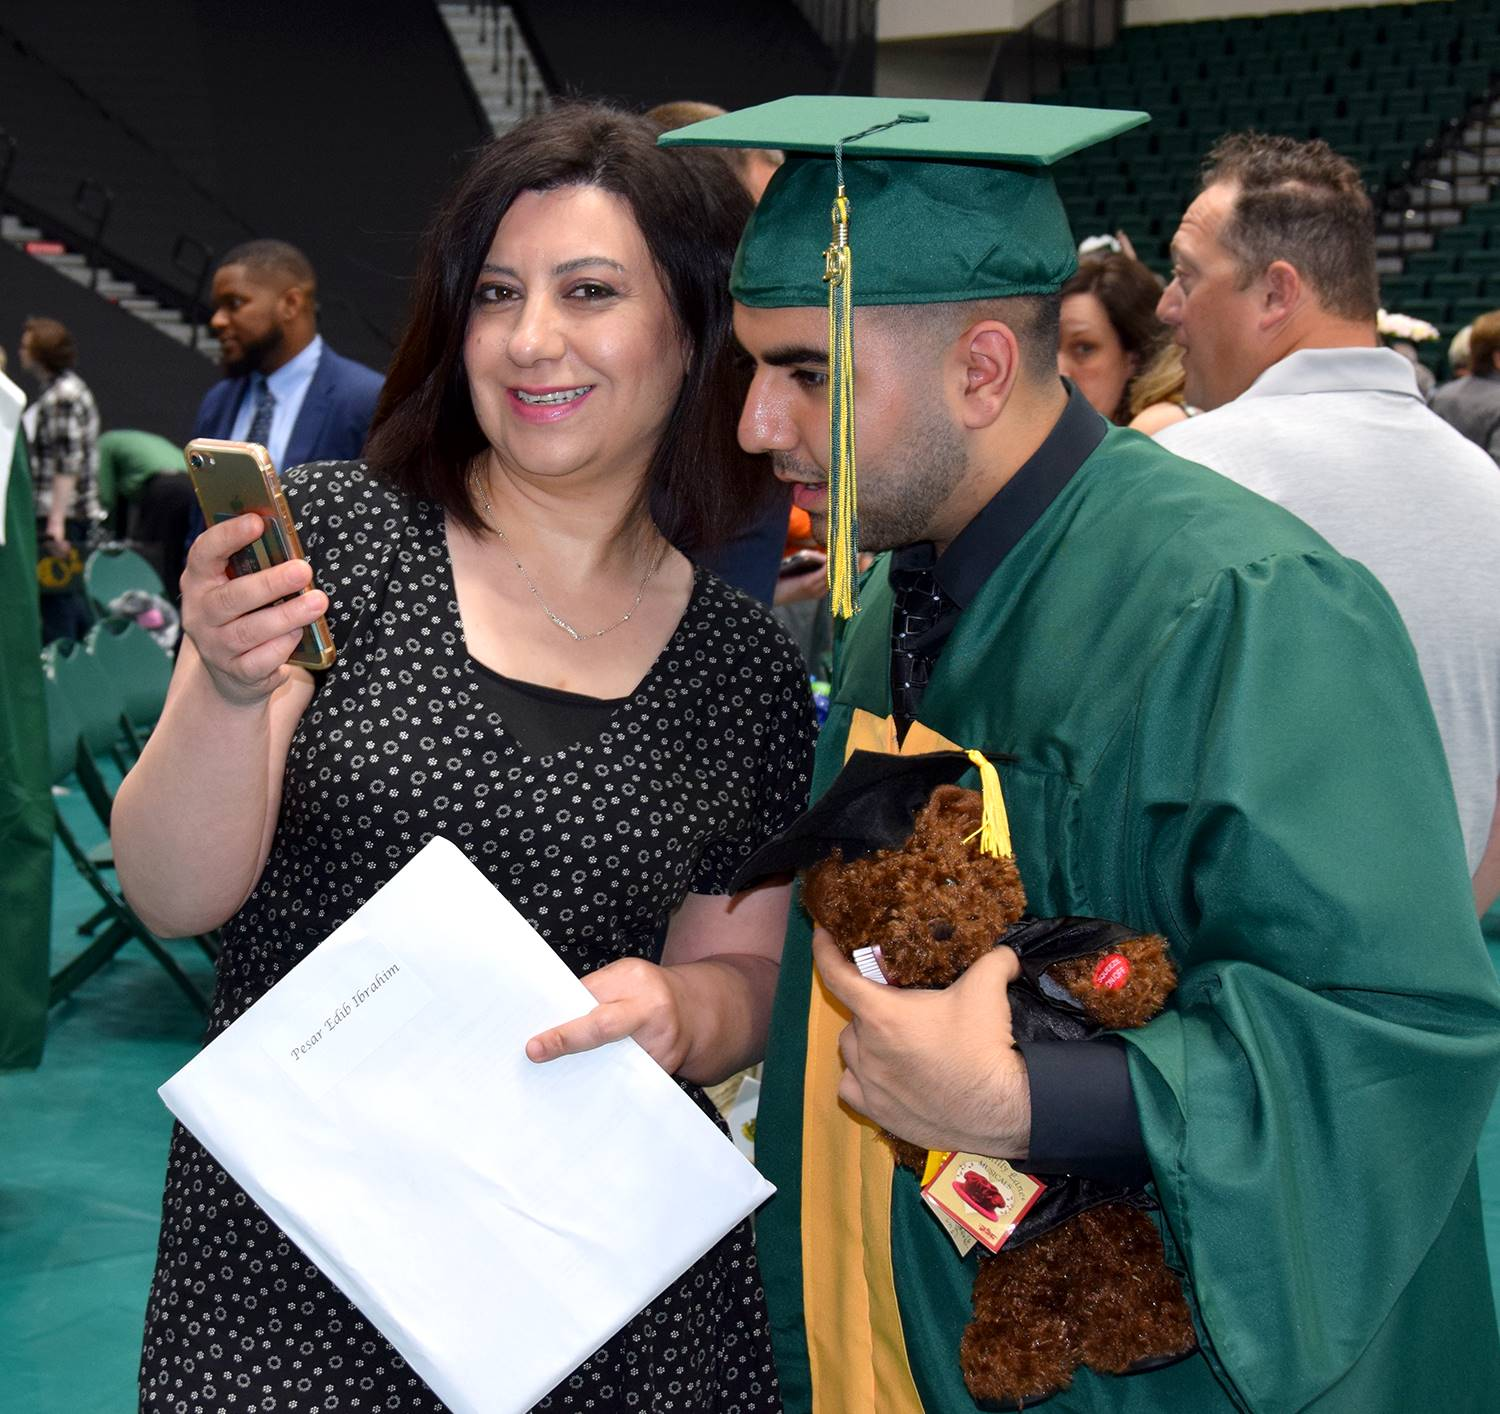 A Vestal High School graduate holding a small brown graduation bear looks over a female relative's s